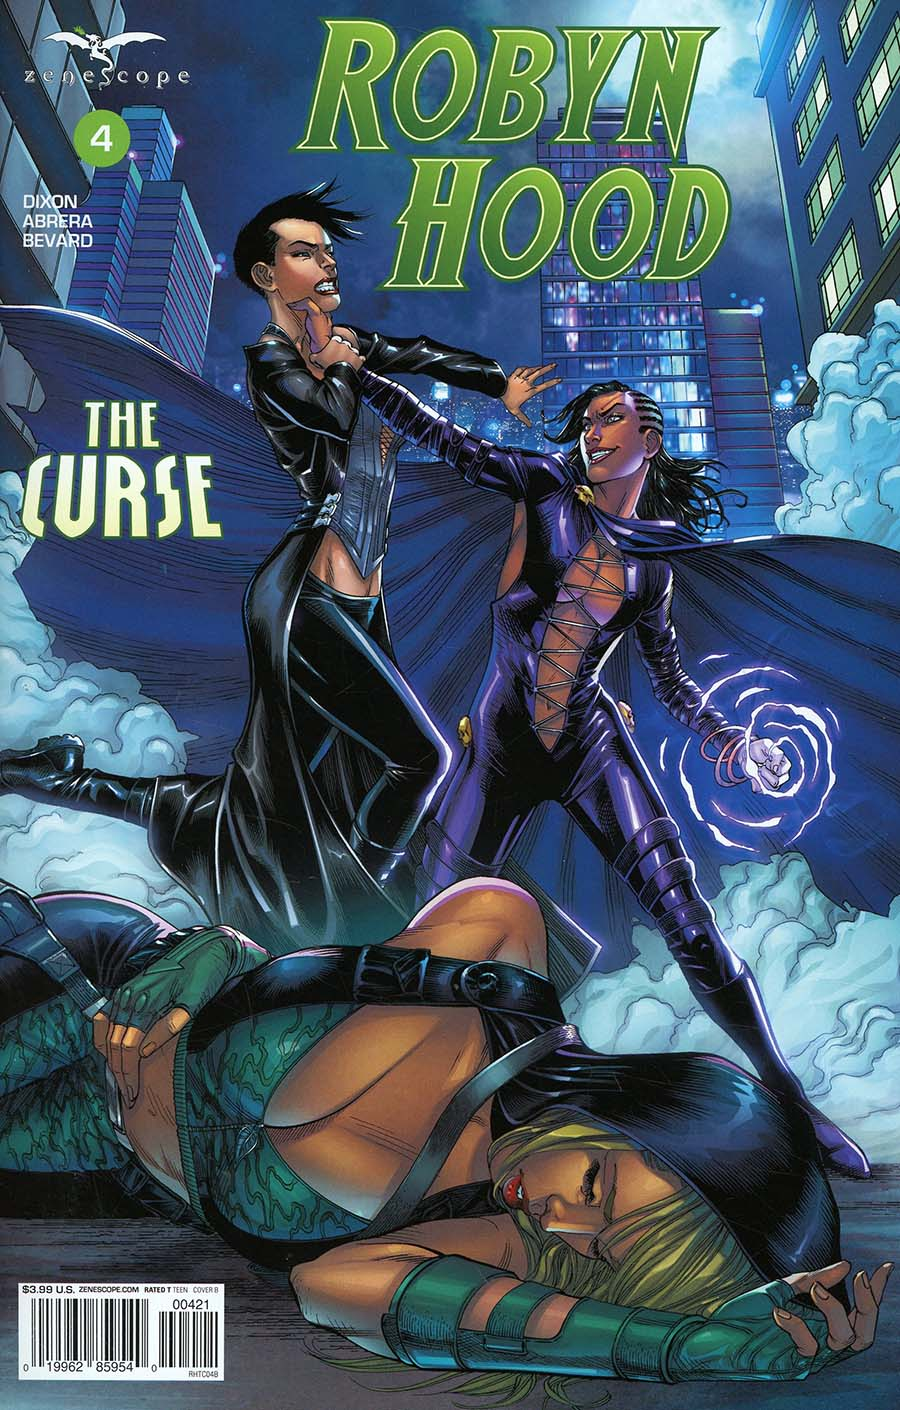 Grimm Fairy Tales Presents Robyn Hood The Curse #4 Cover B Mike S Miller